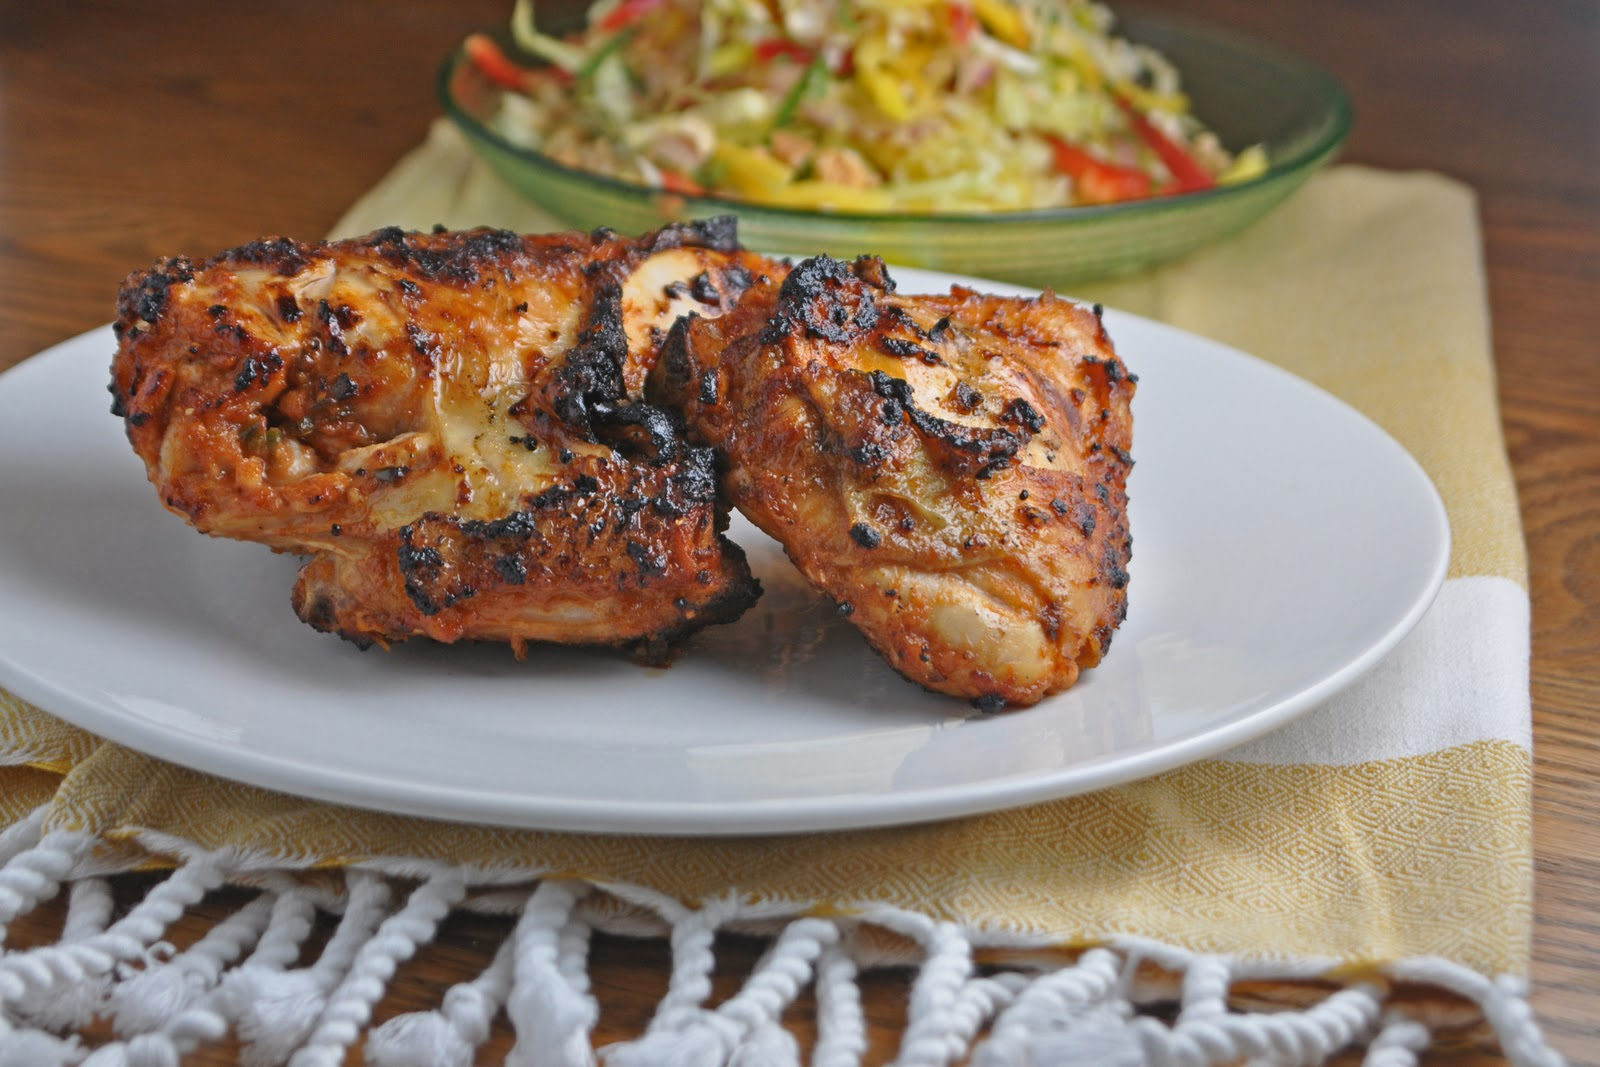 Impeccable Taste: Spicy Grilled Chicken & Mango Slaw